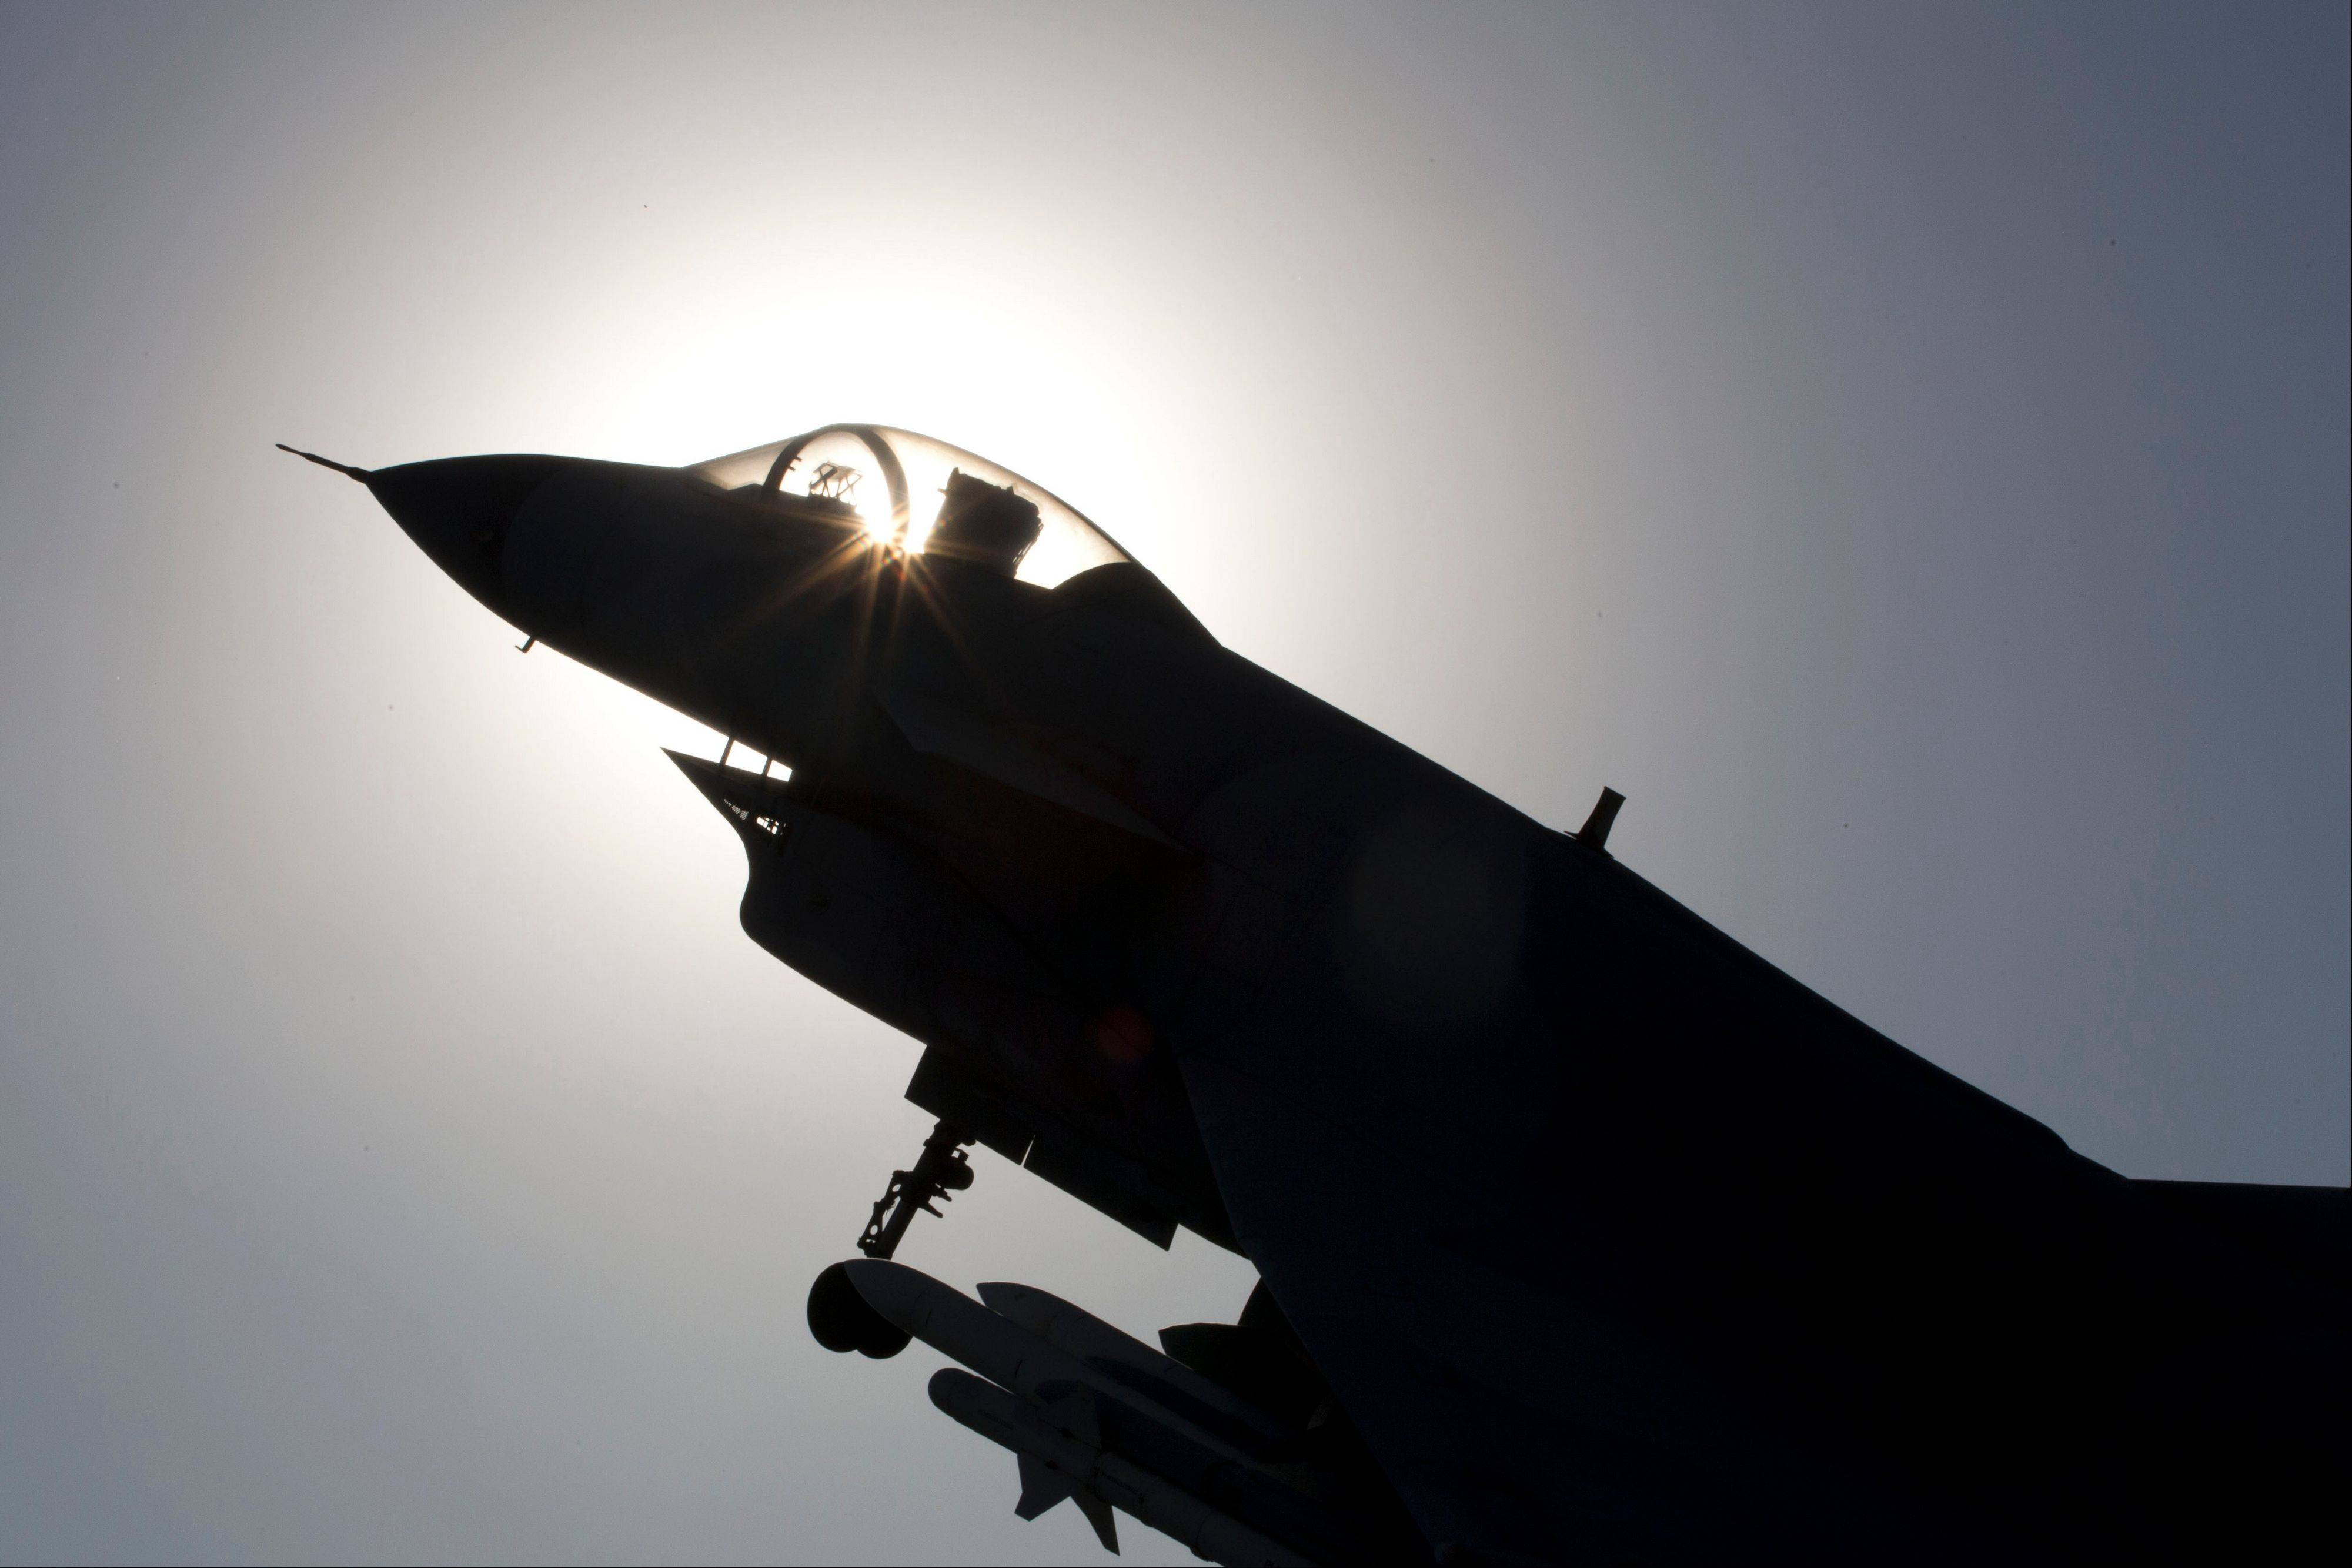 The replica of a Chinese made fighter jet is silhouetted against the sun in Beijing, China, Wednesday, Nov. 27, 2013. China said Wednesday it had monitored two unarmed U.S. bombers that flew over the East China Sea in defiance of Beijing�s declaration it was exercising greater military control over the area.